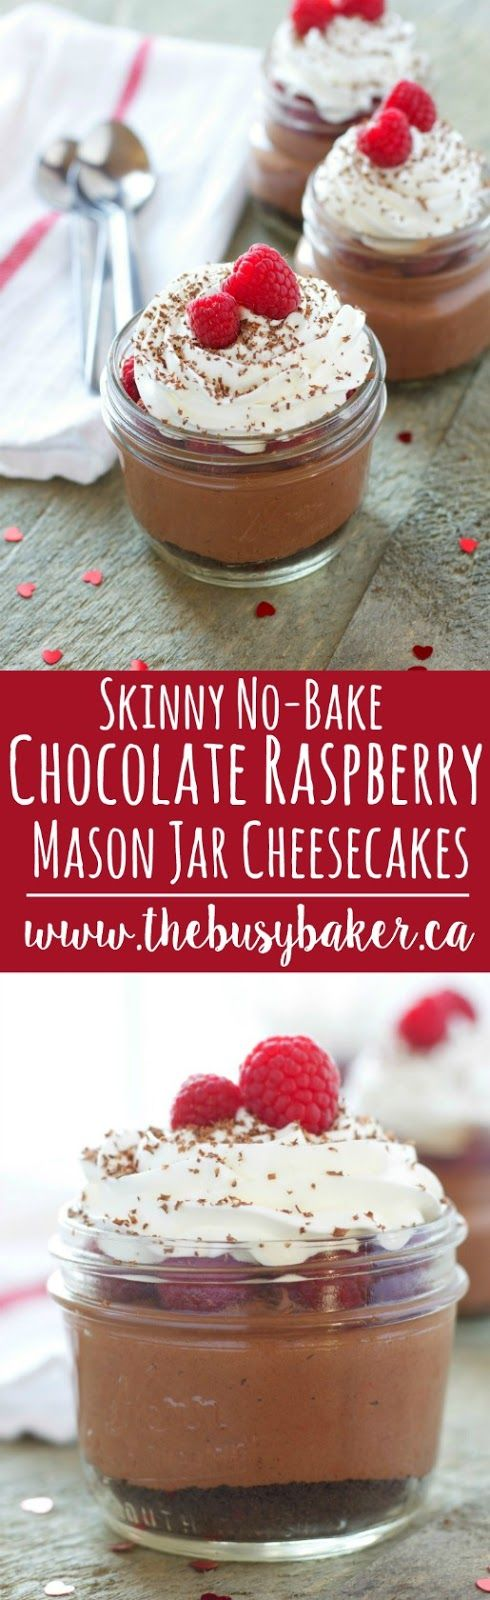 These No-Bake Chocolate Raspberry Mason Jar Cheesecakes are low in fat and sugar and they're the perfect no-guilt dessert for Valentine's Day! Hungry for more? Follow me! Like my page on Facebook!   Subscribe! Click here to get free recipes by email! If there was one dessert I'm not sure I could live without it...